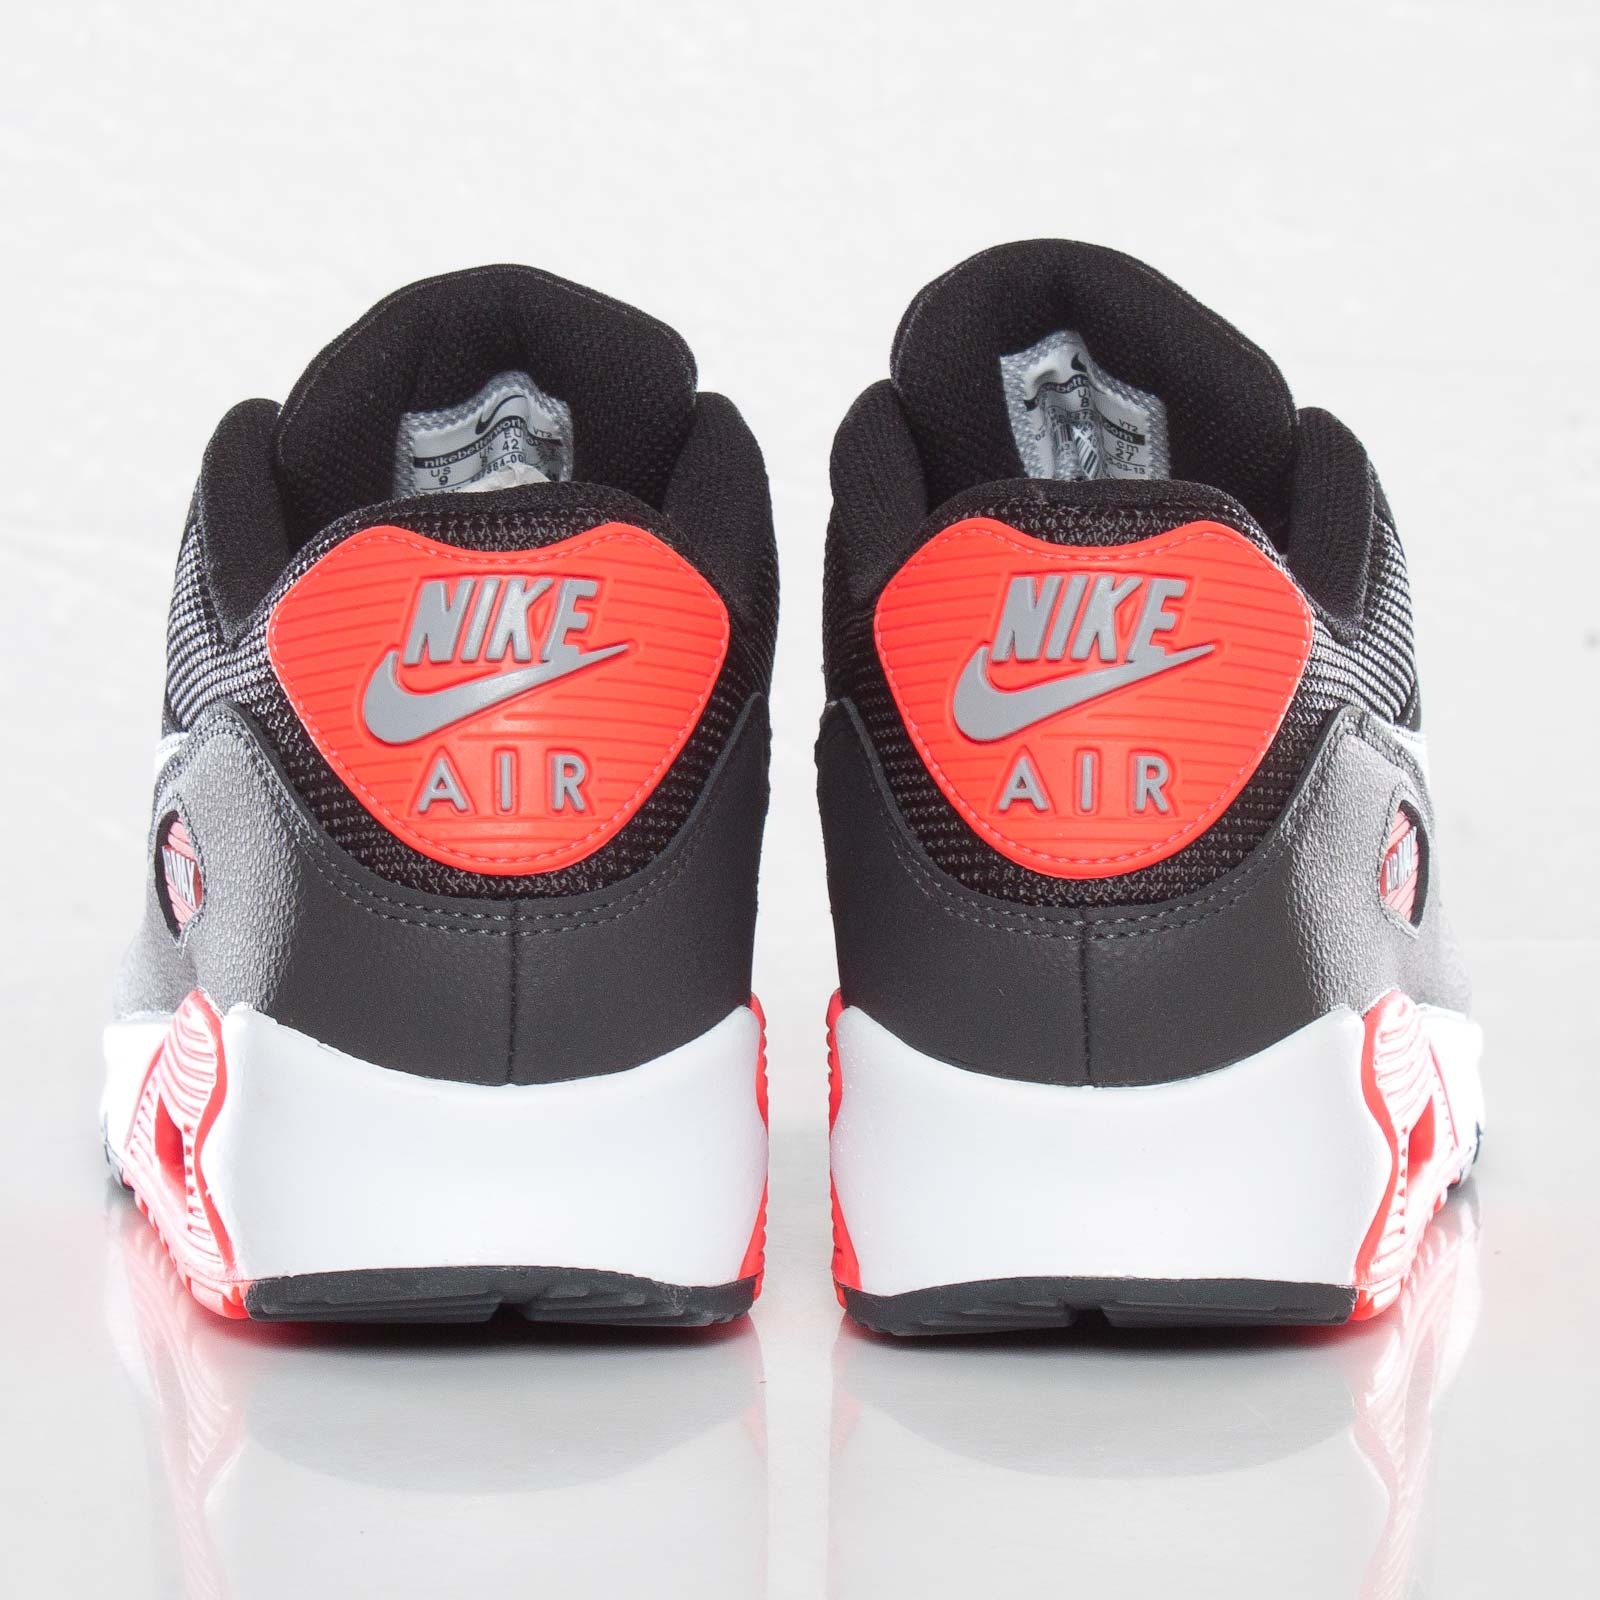 Details about NIKE AIR MAX 90 ESSENTIAL(BLACKWOLF GREY ATOMIC RED ANTHRACITE) Size 7.5 UK